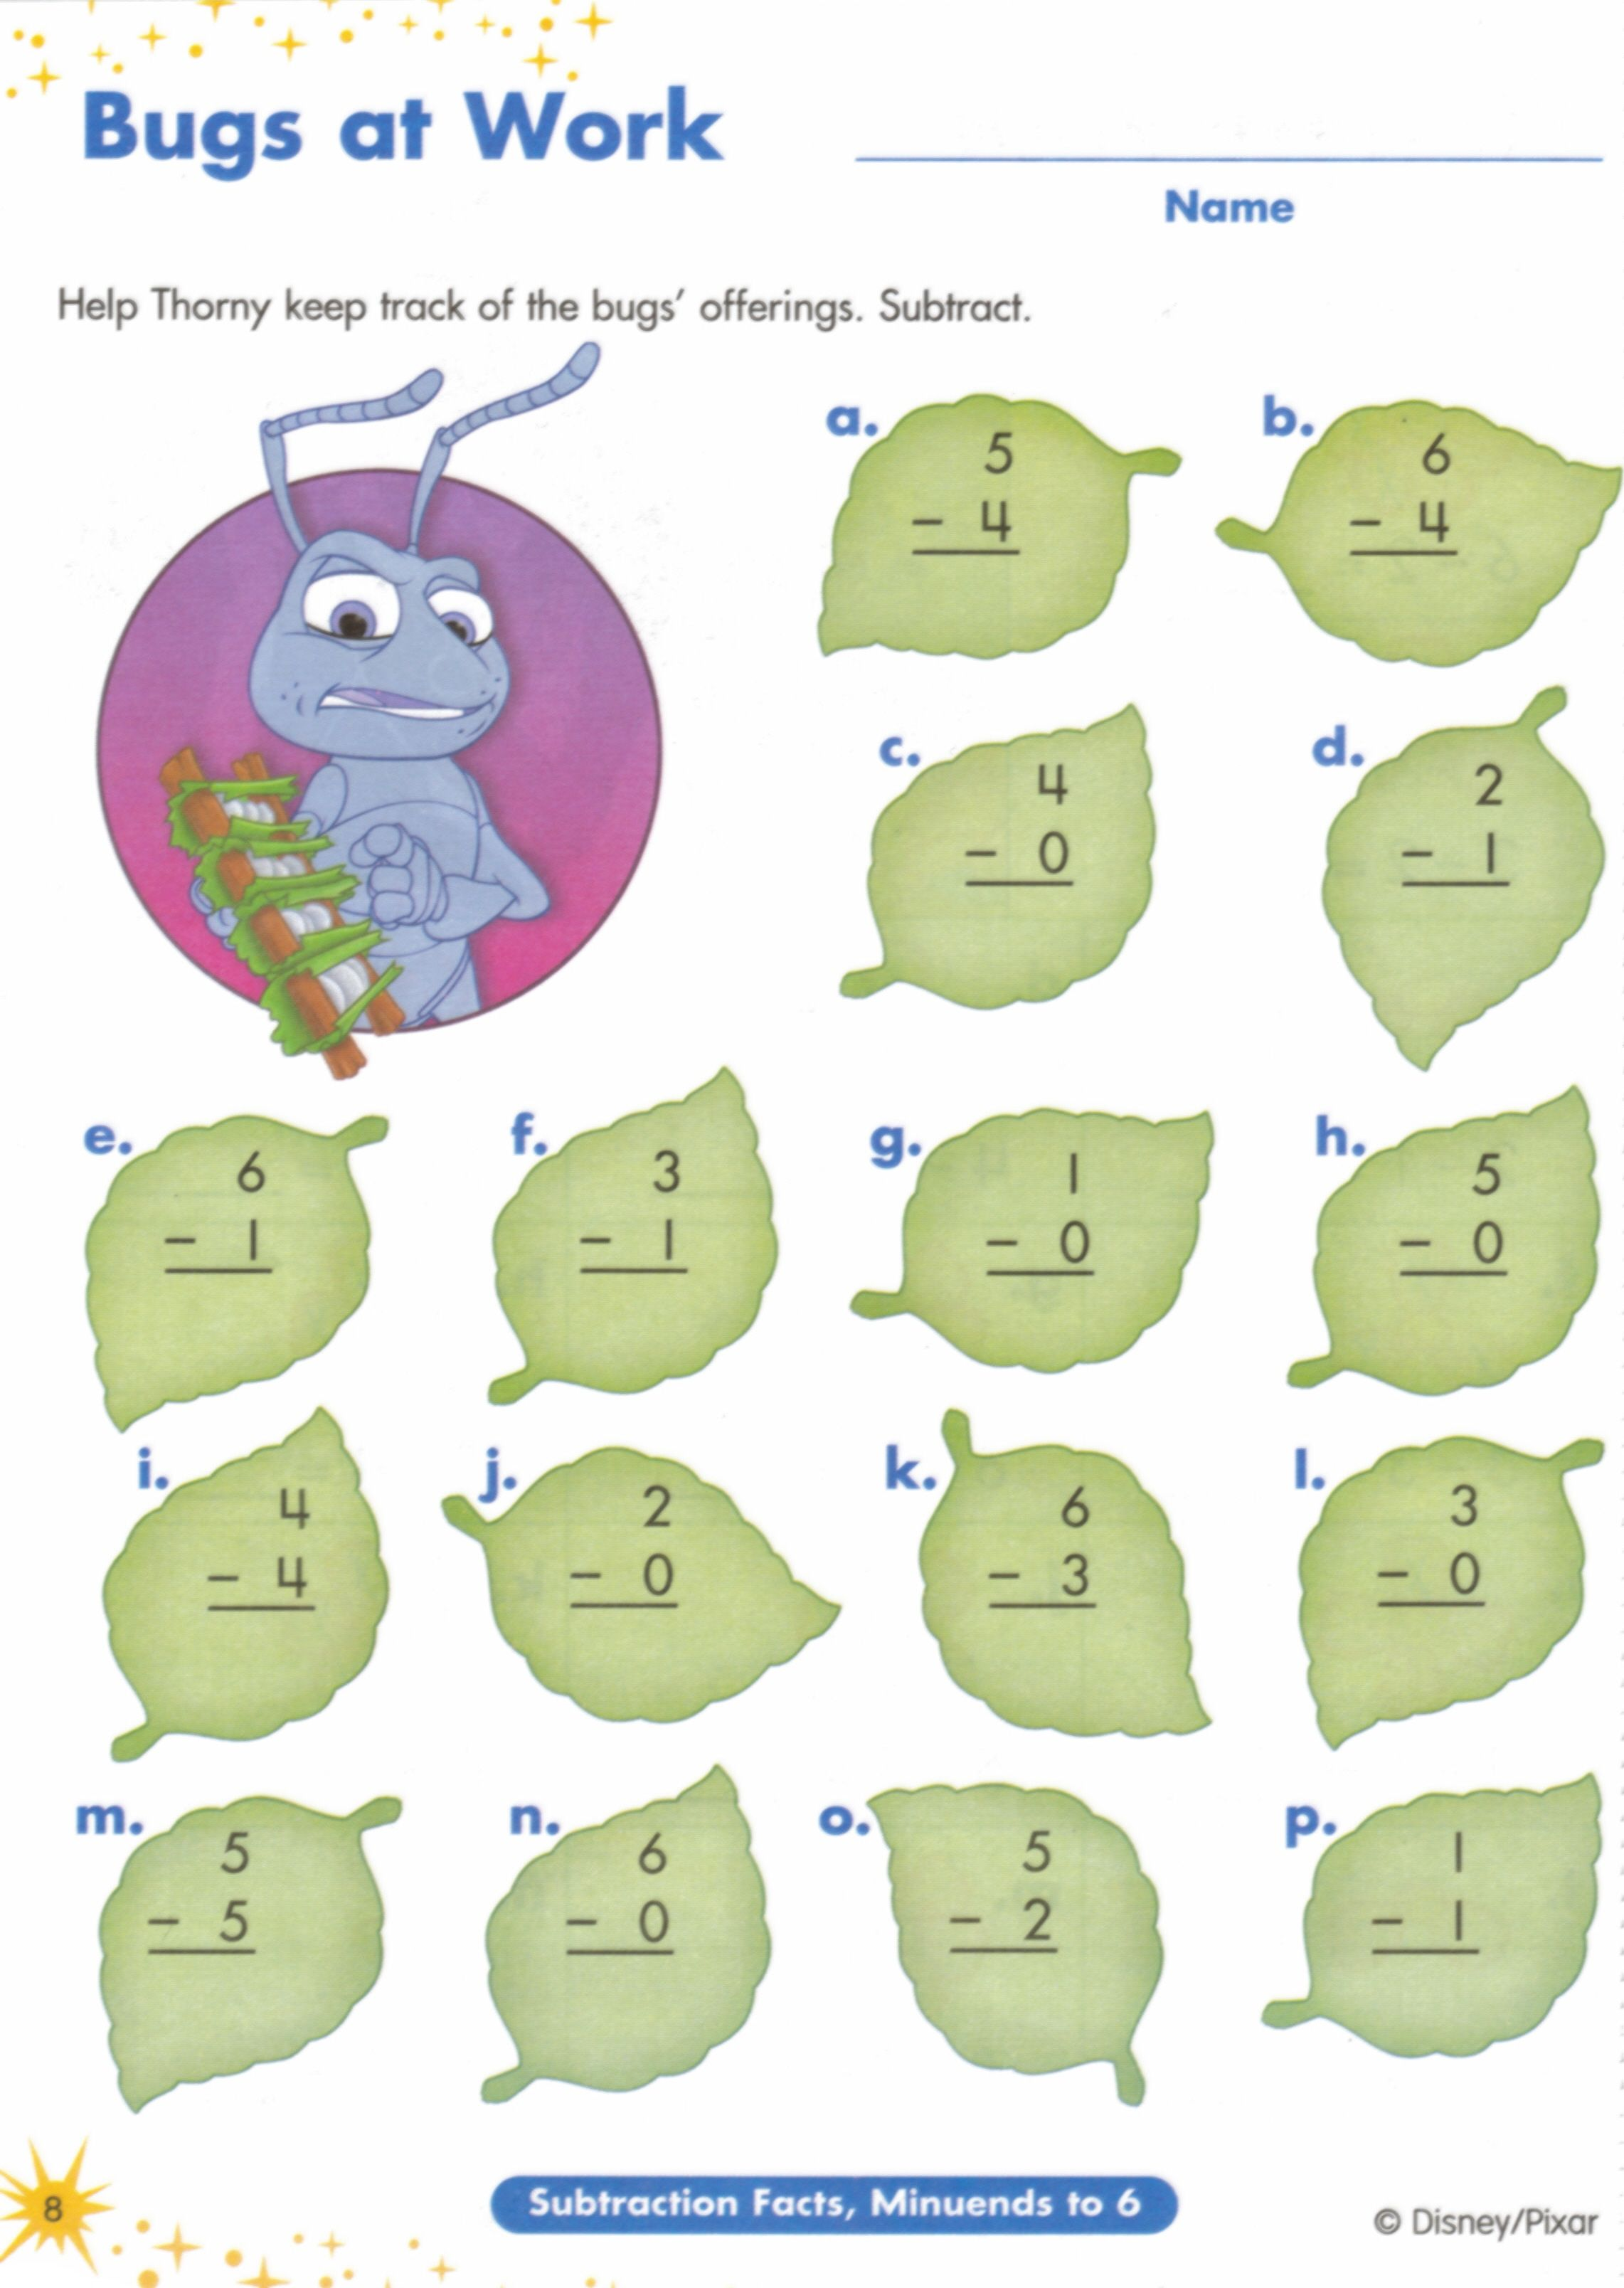 Proatmealus  Inspiring  Images About Worksheets On Pinterest  Fun Facts For Kids  With Engaging  Images About Worksheets On Pinterest  Fun Facts For Kids Earth Day Worksheets And Jungles With Delightful Worksheet On Algebraic Expressions Also Consolidate Worksheets Wizard In Addition Plot And Whisker Box Worksheets And Qualified Dividend And Capital Gain Tax Worksheet As Well As Free Addition Worksheets For Kindergarten Additionally Subtracting Fractions With Unlike Denominators Worksheets From Pinterestcom With Proatmealus  Engaging  Images About Worksheets On Pinterest  Fun Facts For Kids  With Delightful  Images About Worksheets On Pinterest  Fun Facts For Kids Earth Day Worksheets And Jungles And Inspiring Worksheet On Algebraic Expressions Also Consolidate Worksheets Wizard In Addition Plot And Whisker Box Worksheets From Pinterestcom